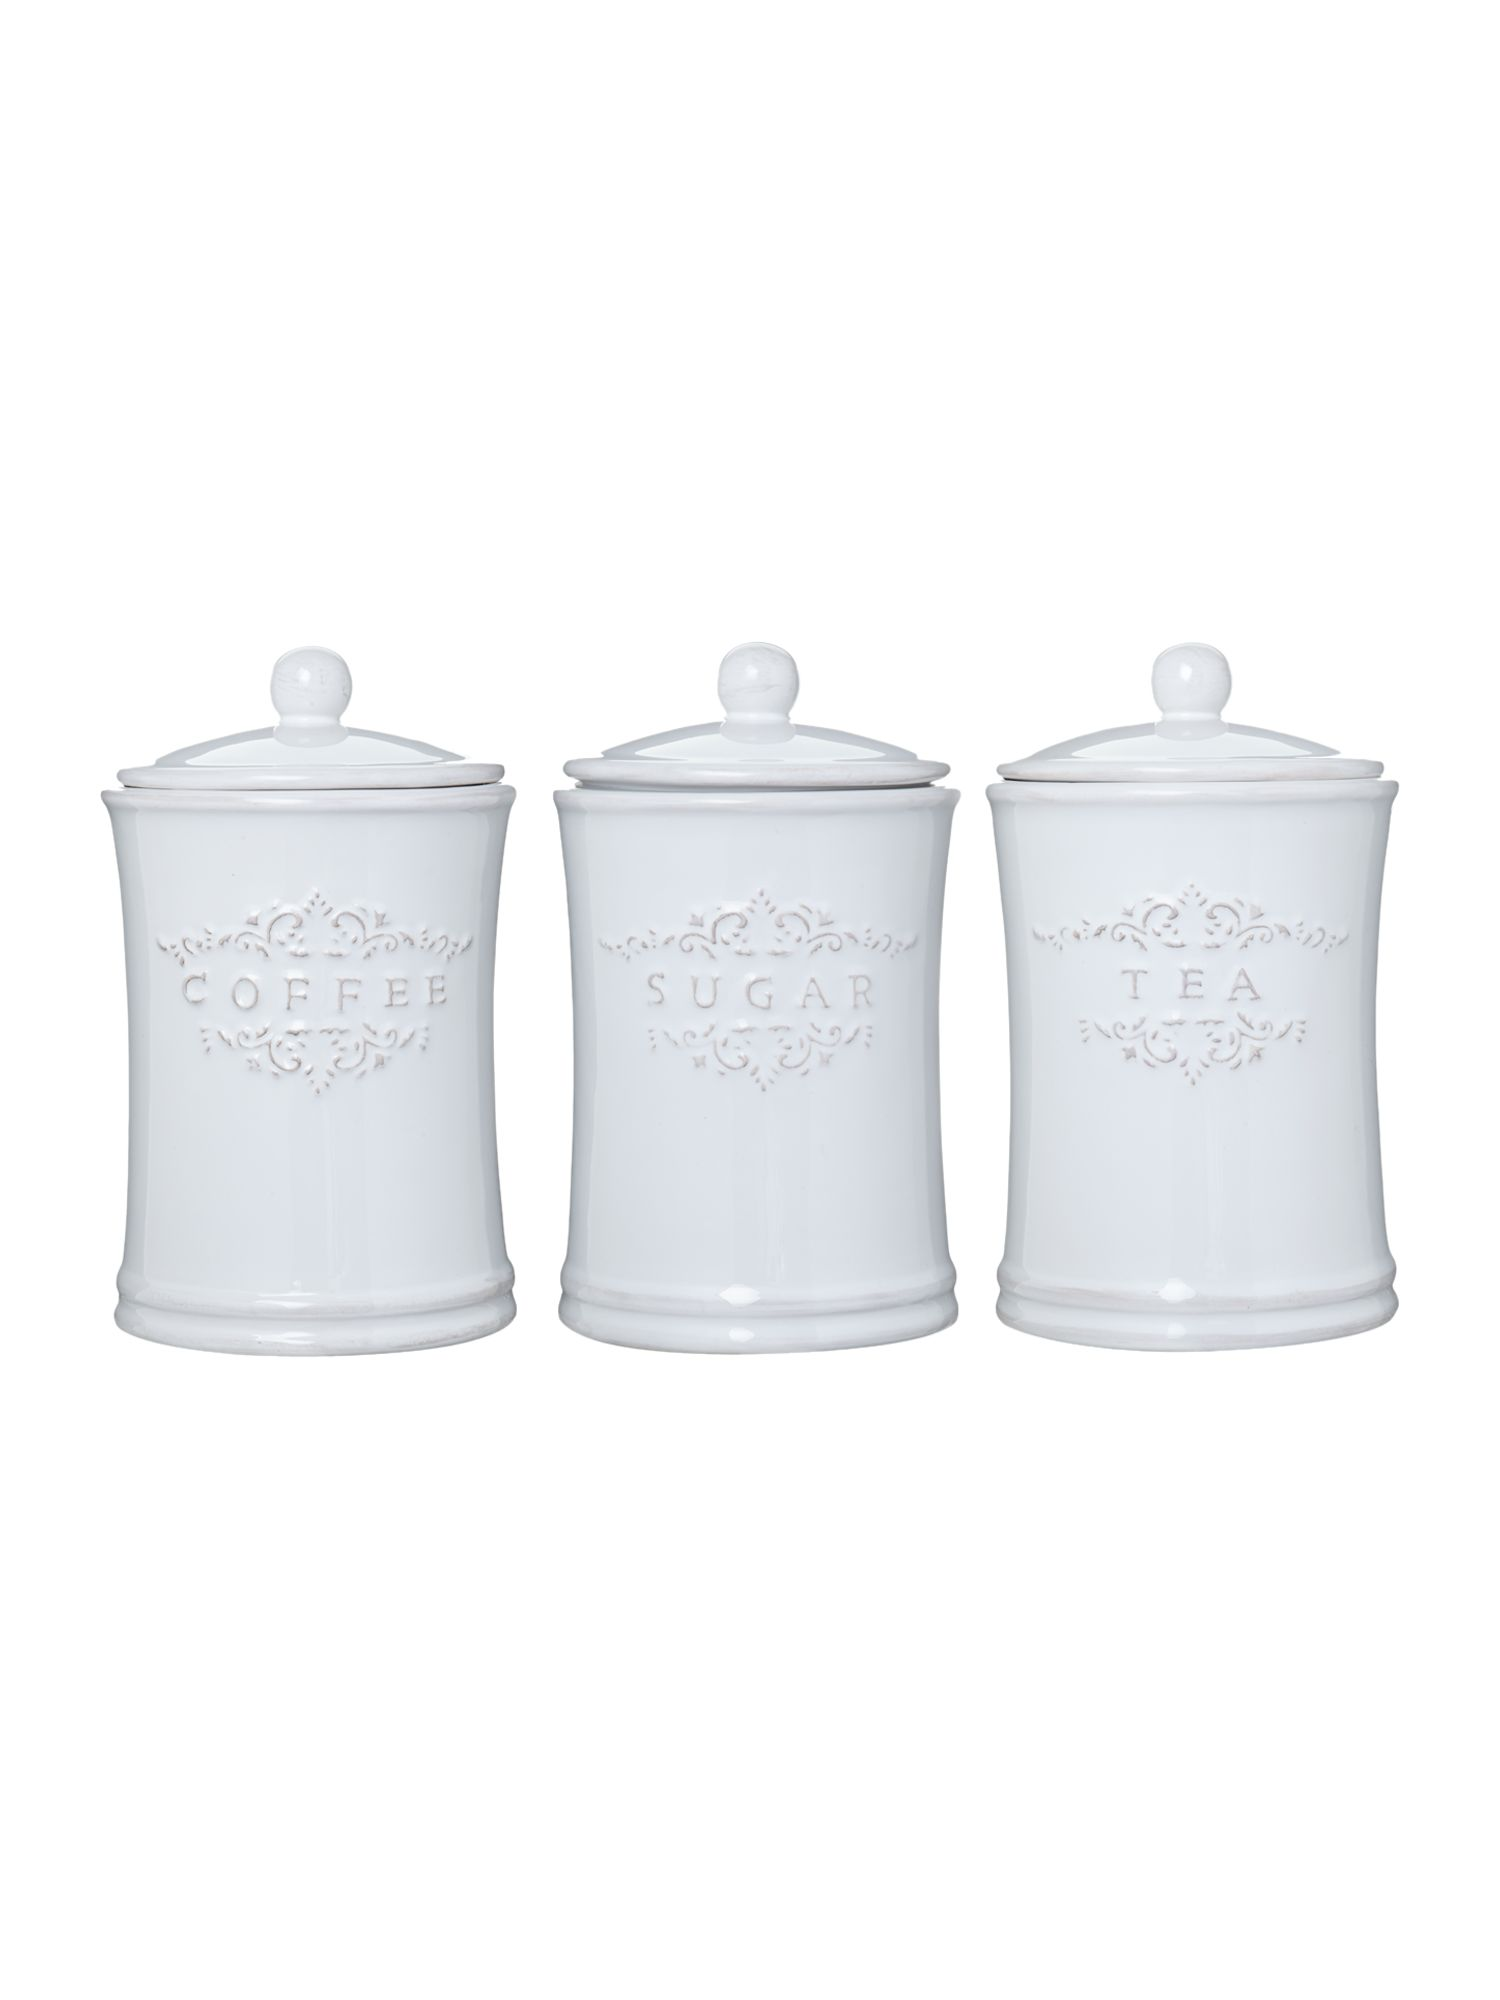 Elise set of 3 storage jars